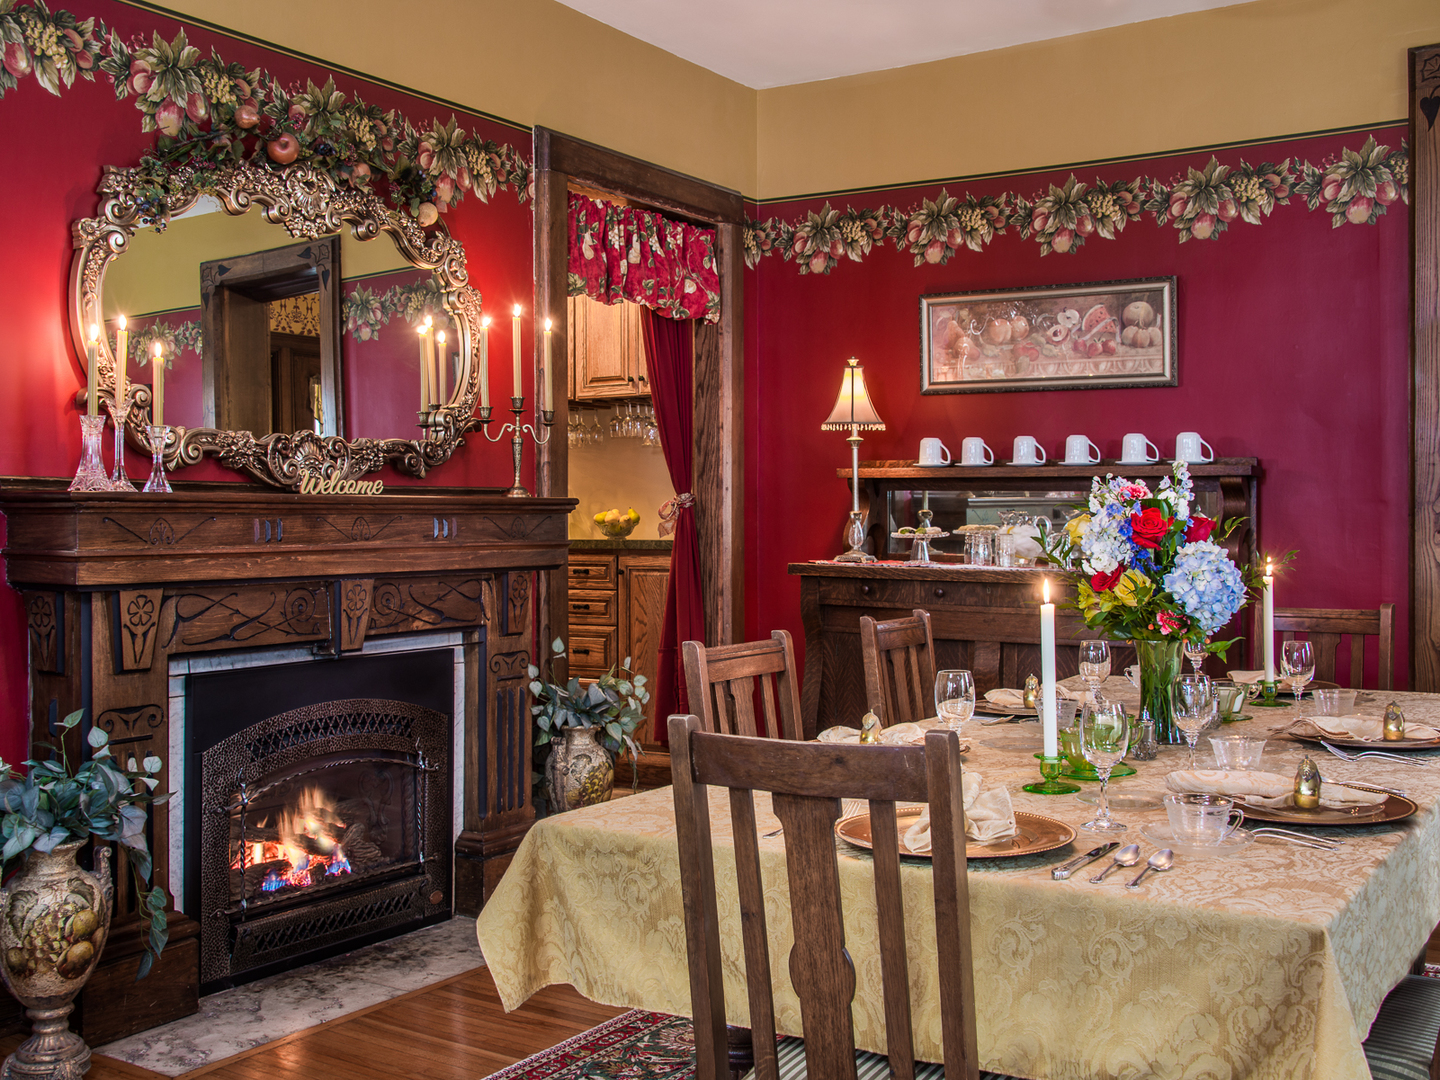 A fireplace in a living room filled with furniture and a fire place at 1840 Inn On the Main Bed and Breakfast.